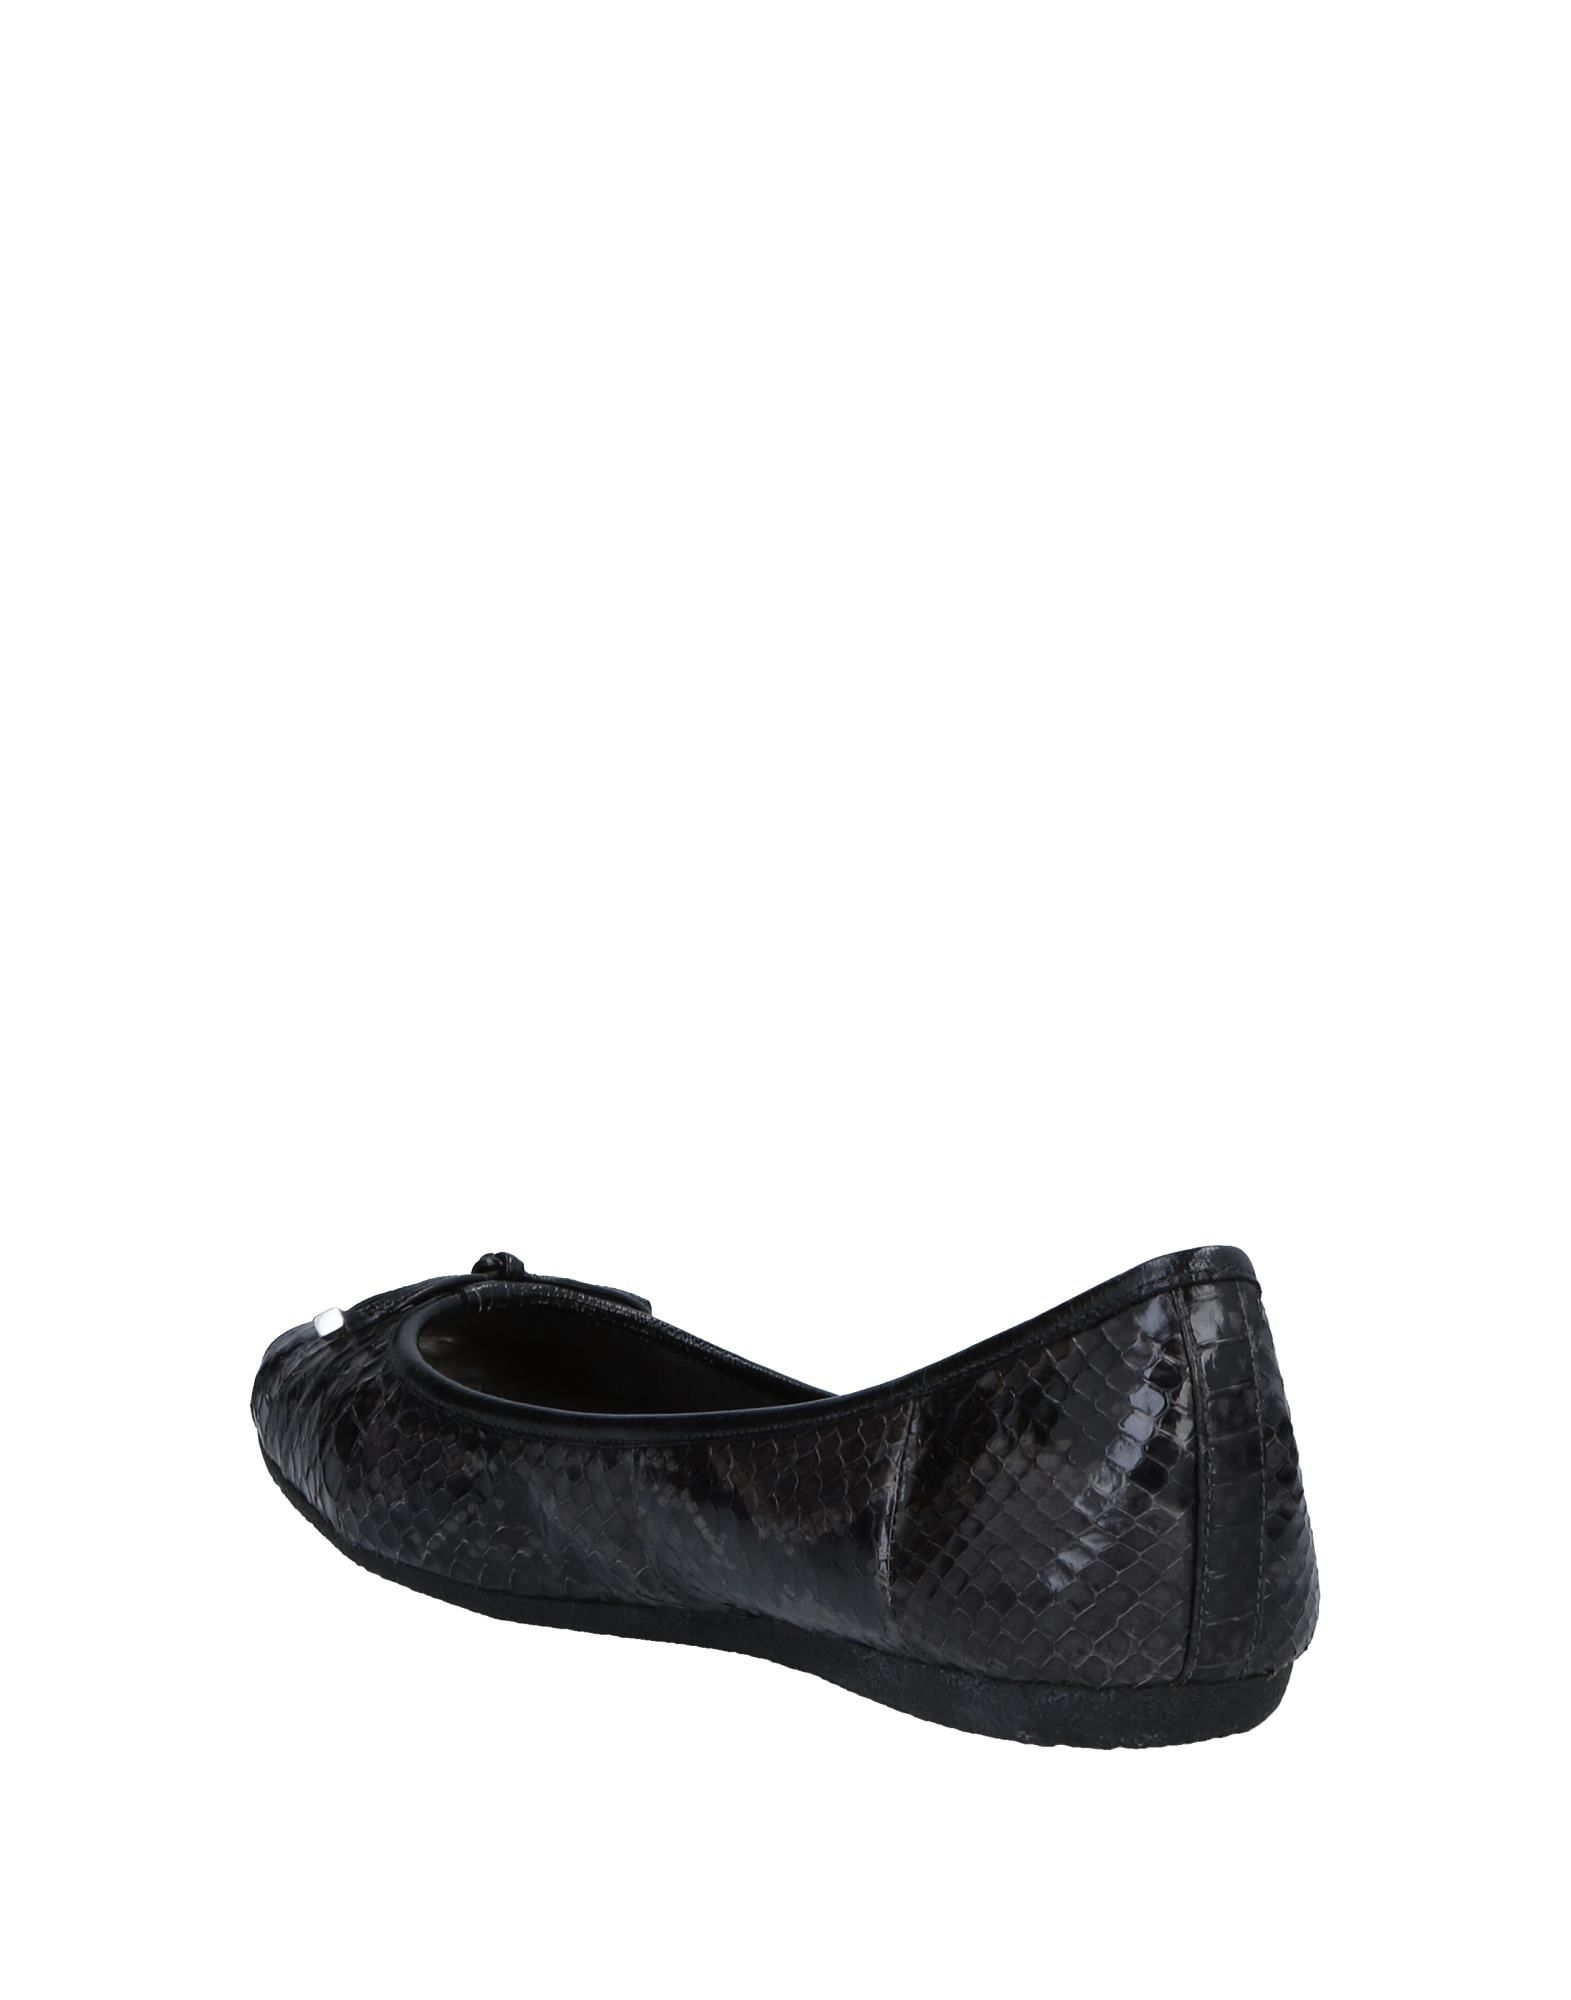 Guess By Marciano Ballet Flats - Women Guess Guess Guess By Marciano Ballet Flats online on  United Kingdom - 11531976ME a5f1ac